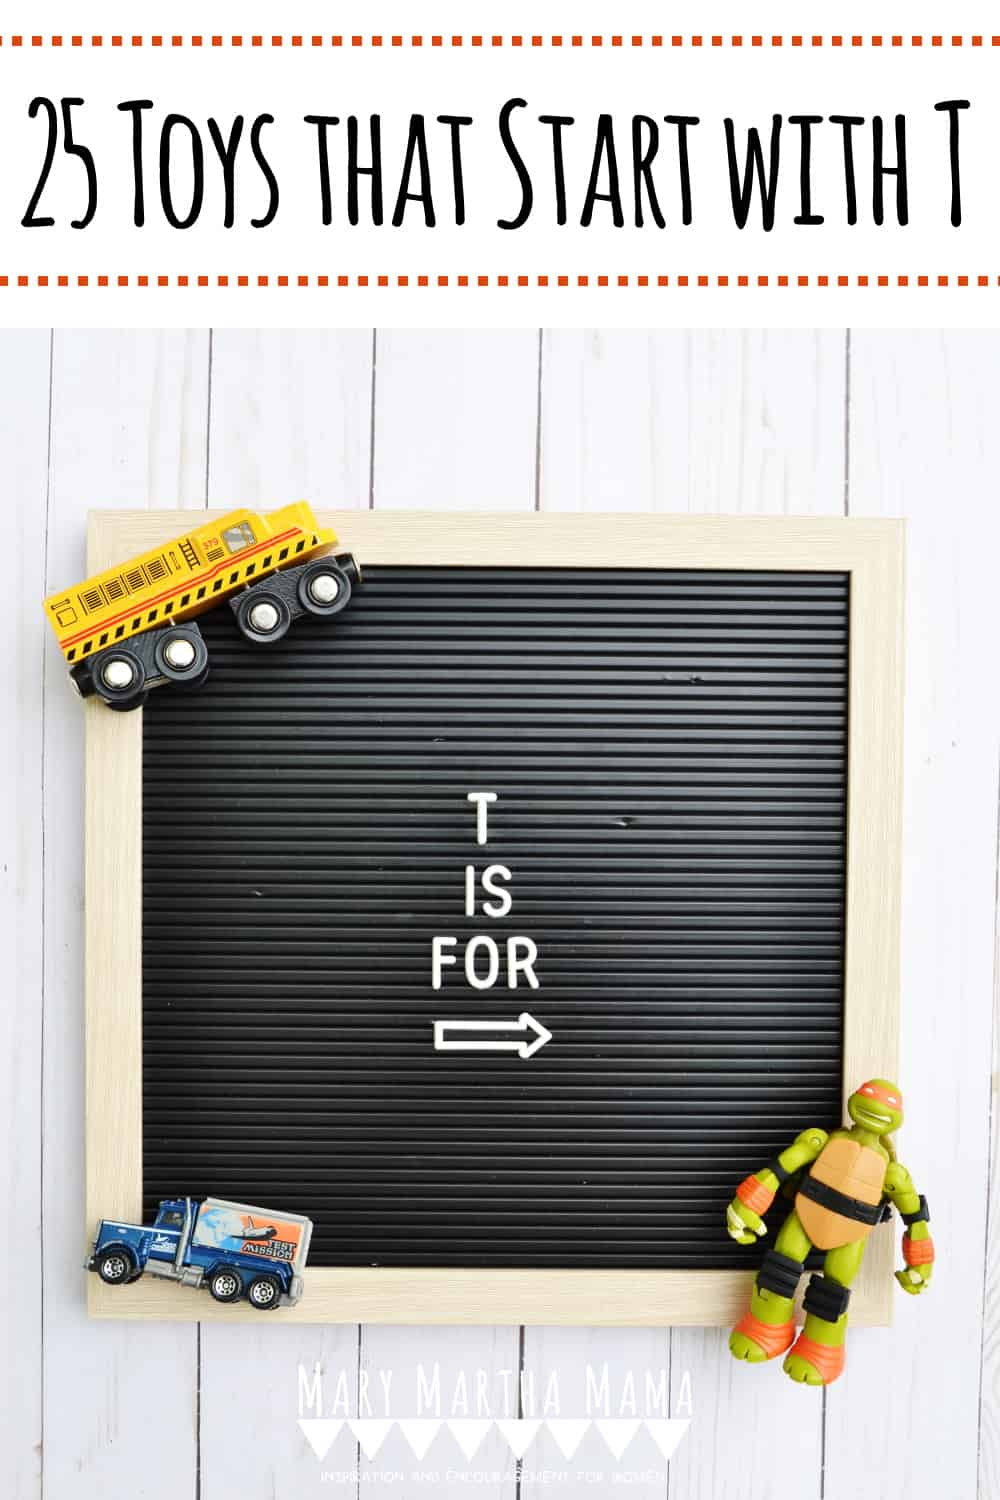 Have a kiddo with a letter of the week show and tell assignment?  You need to check out this list of 25 Toys that Start with T.